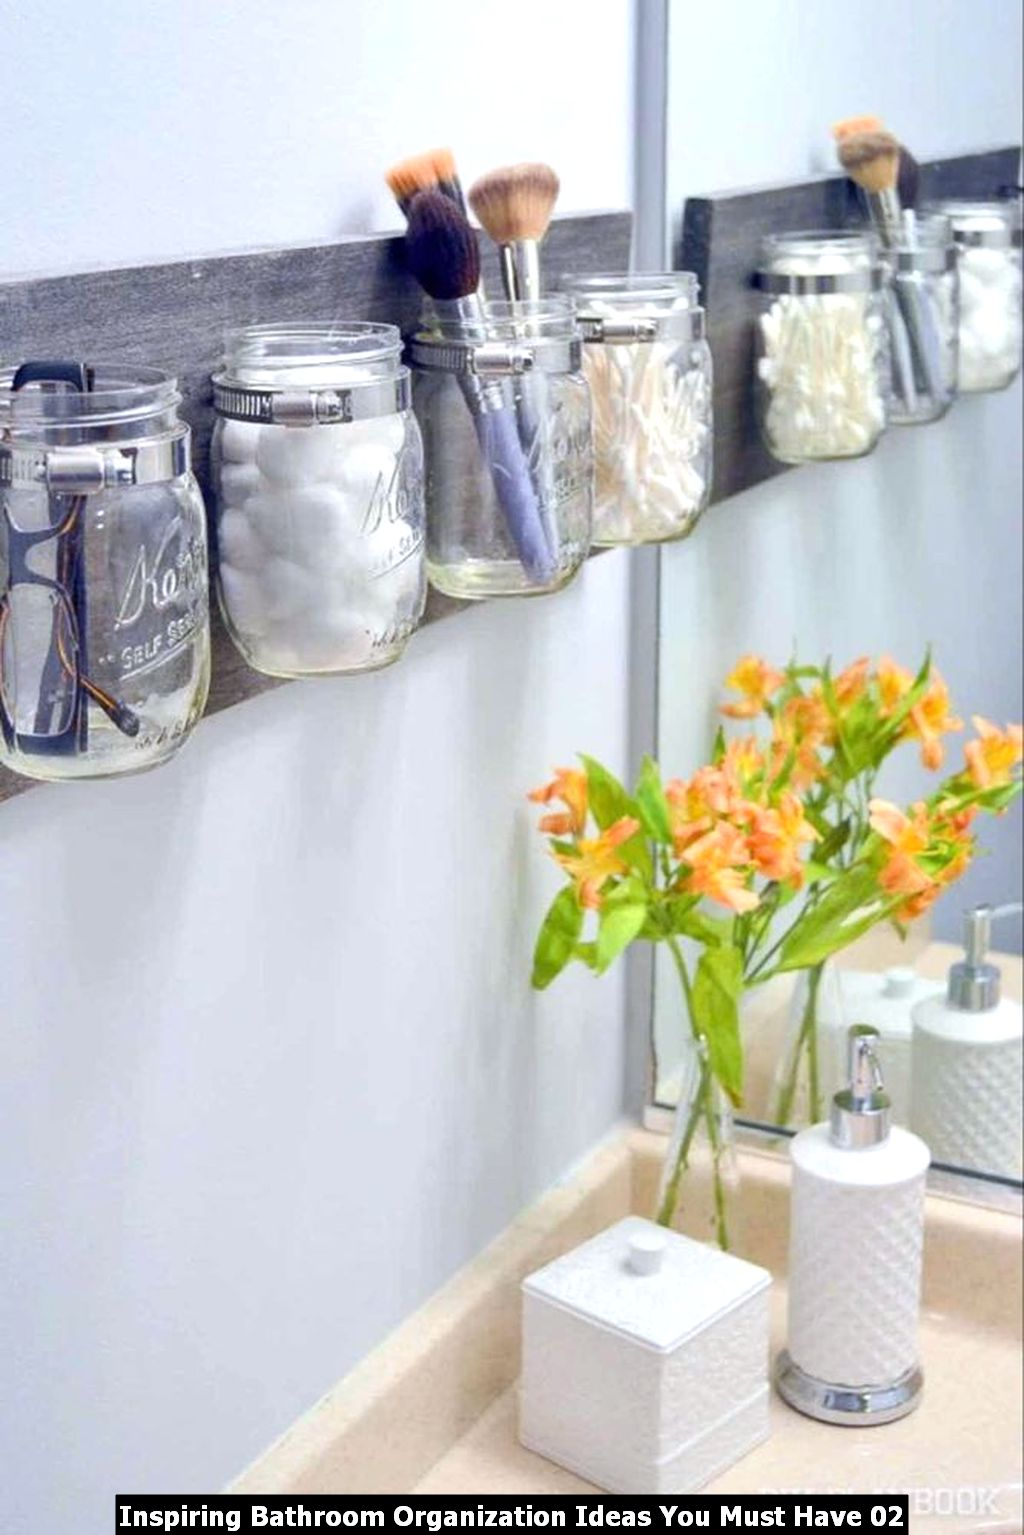 Inspiring Bathroom Organization Ideas You Must Have 02